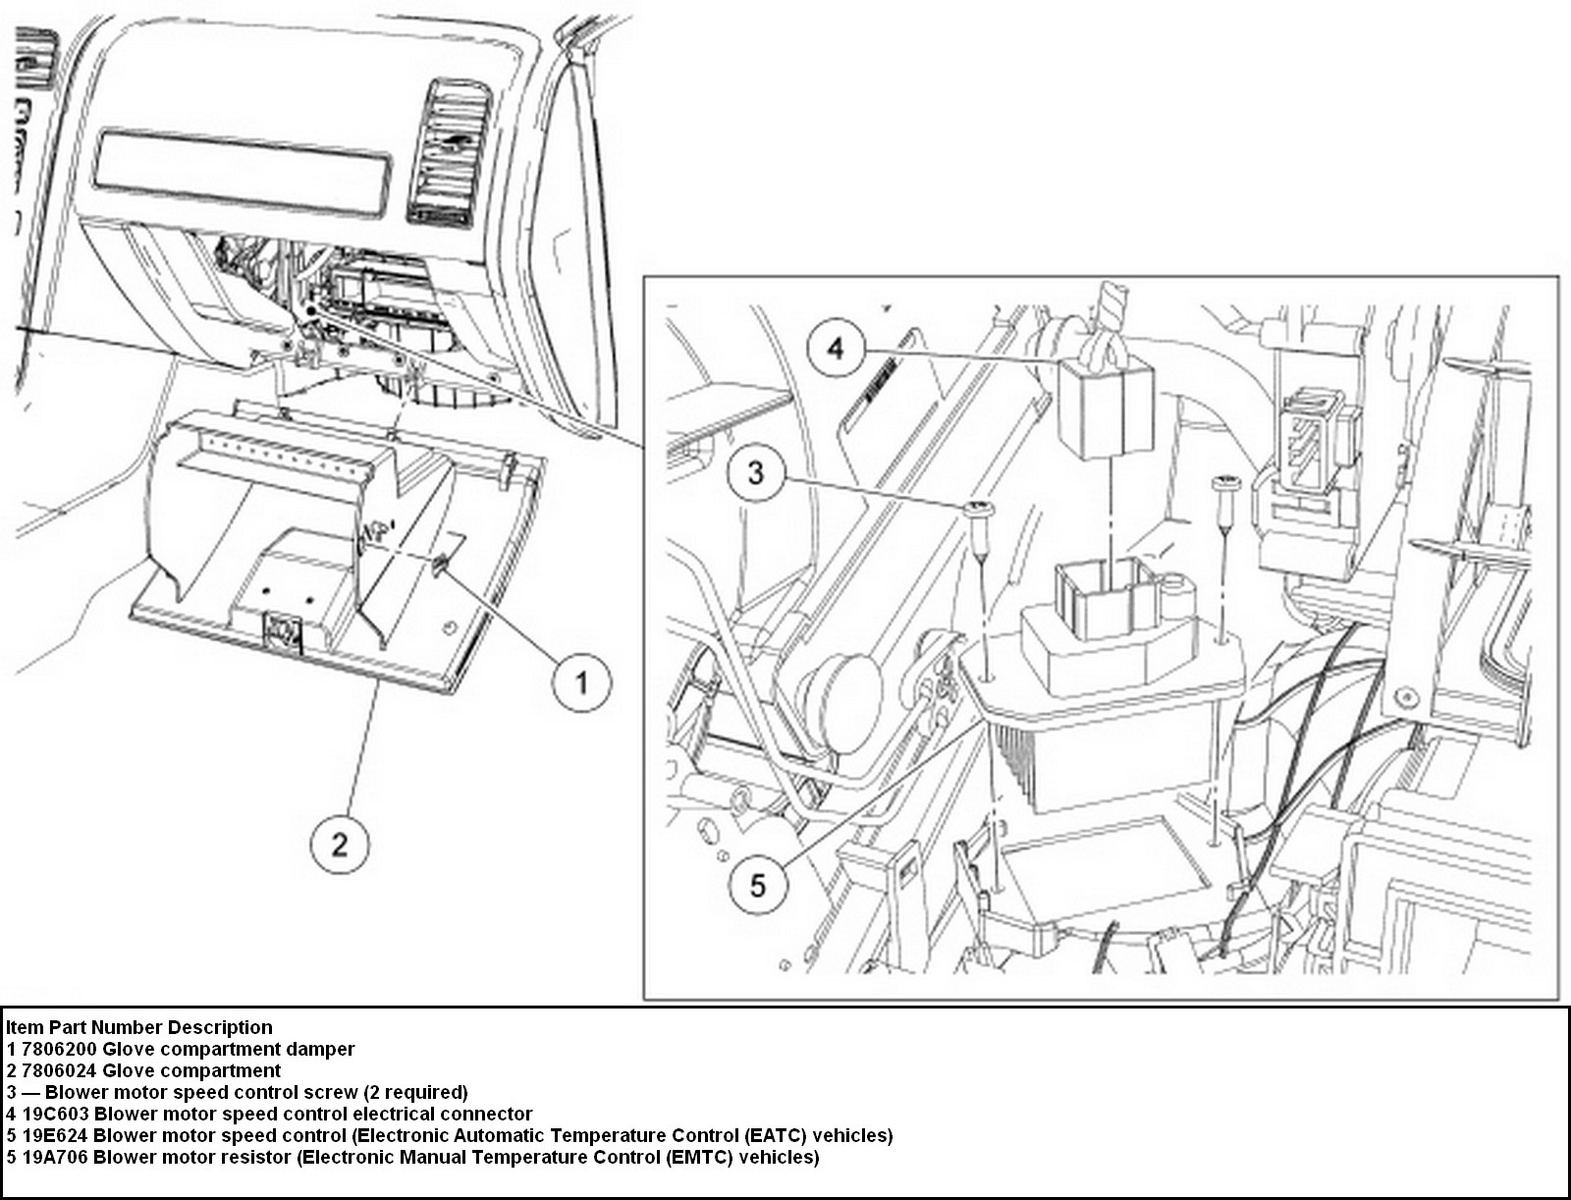 07 11 Acadia Enclave Traverse Power Steering Pressure Hose Line 20779364 additionally Ford F 150 Exhaust System Diagram B67c0fc08759f173 in addition Viewtopic as well 502yn 1999 Chevy Tahoe likewise What Does The Vacuum Hose Below The Egr Assembly On A 1997 Ford Escort Attach To. on cabin air filter location